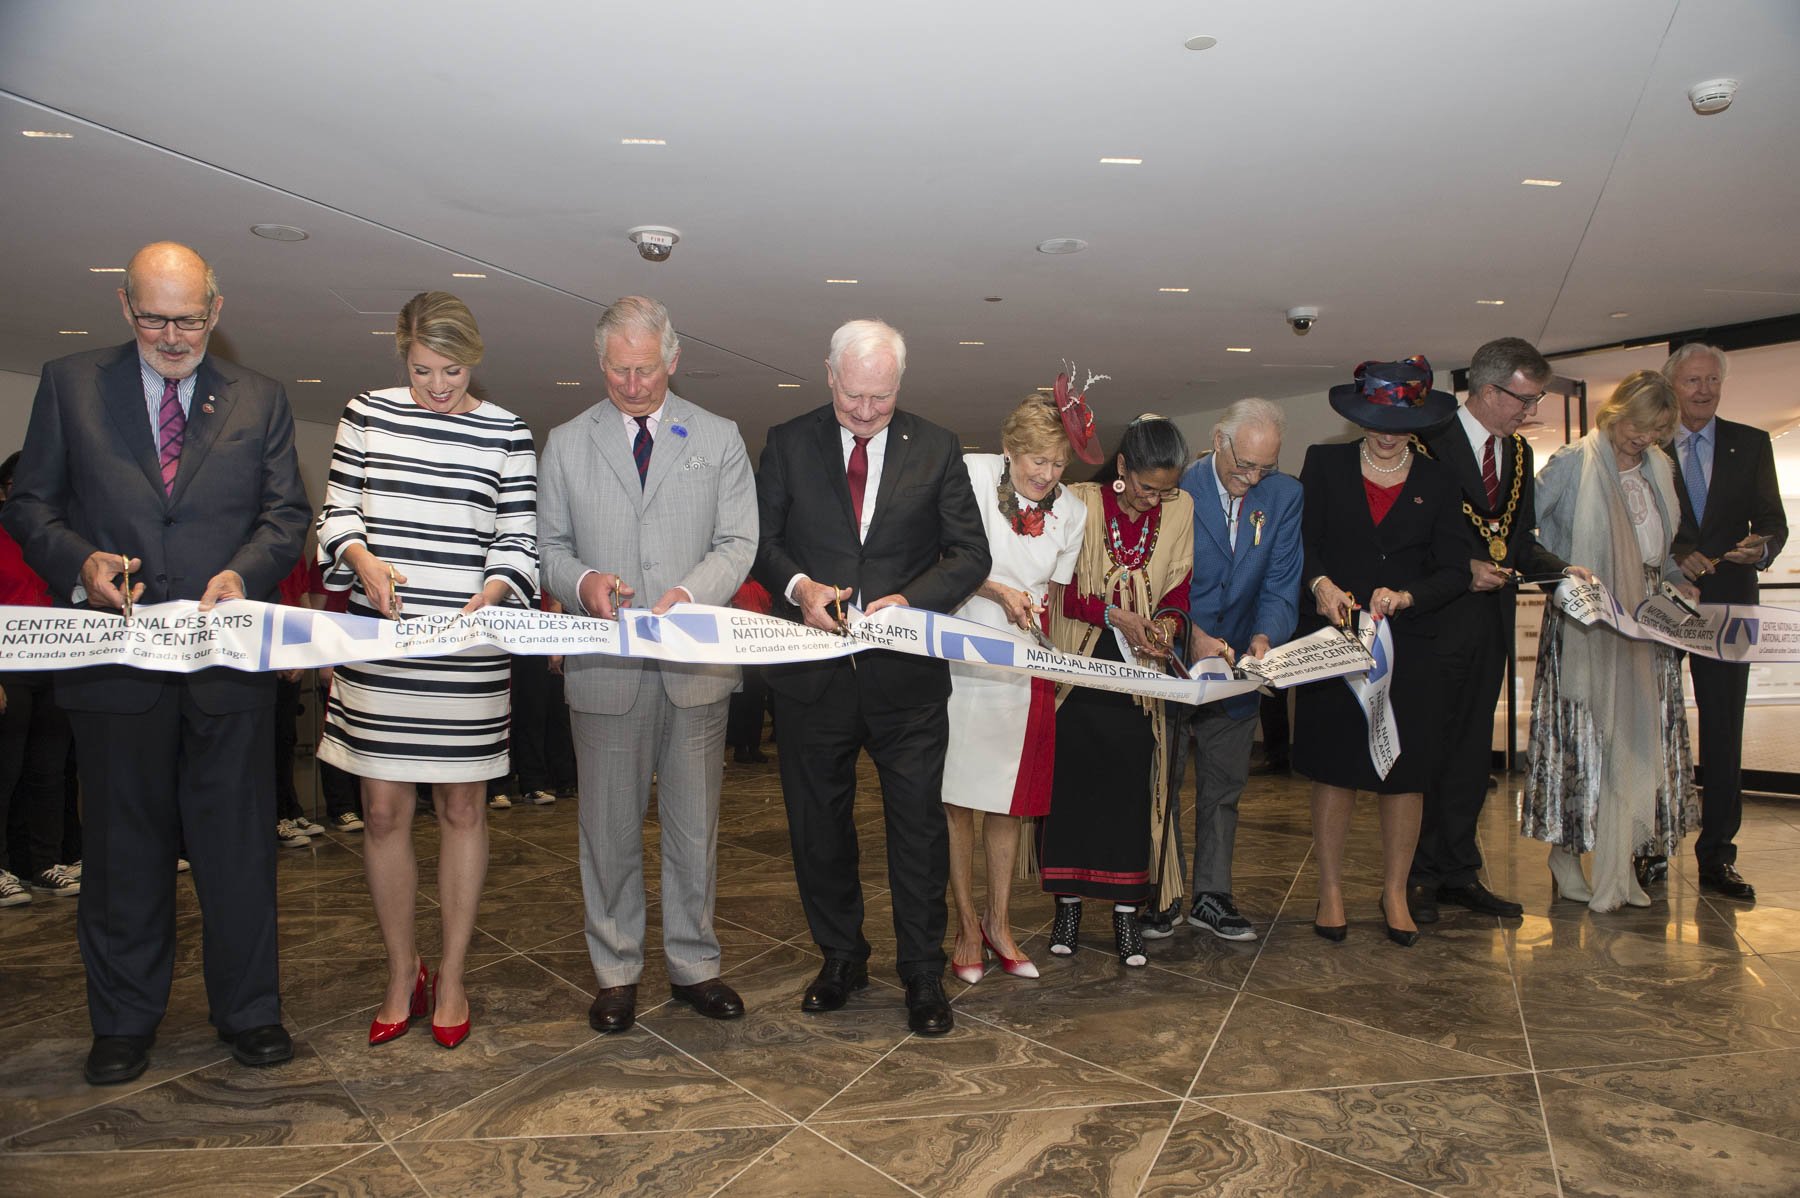 Their Excellencies, the Prince of Wales and other distinguished guests had the honour of cutting the ribbon, and met with artists, Indigenous leaders and the architects behind the rehabilitation work.